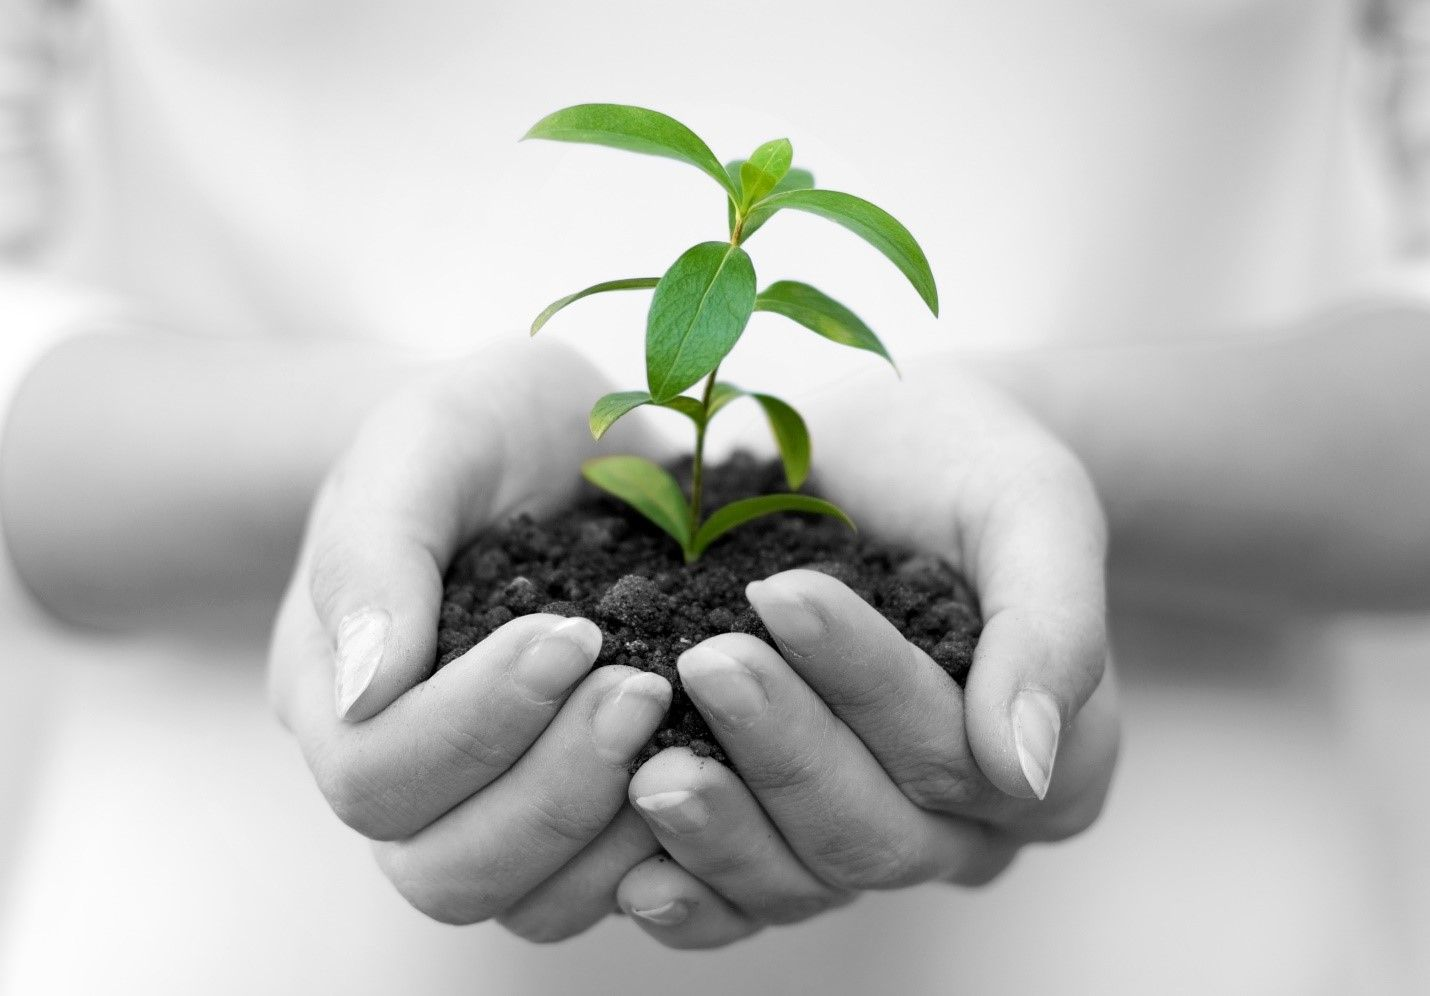 Taking Leadership in Planting Seeds of Kindess to Make the World a Better Place